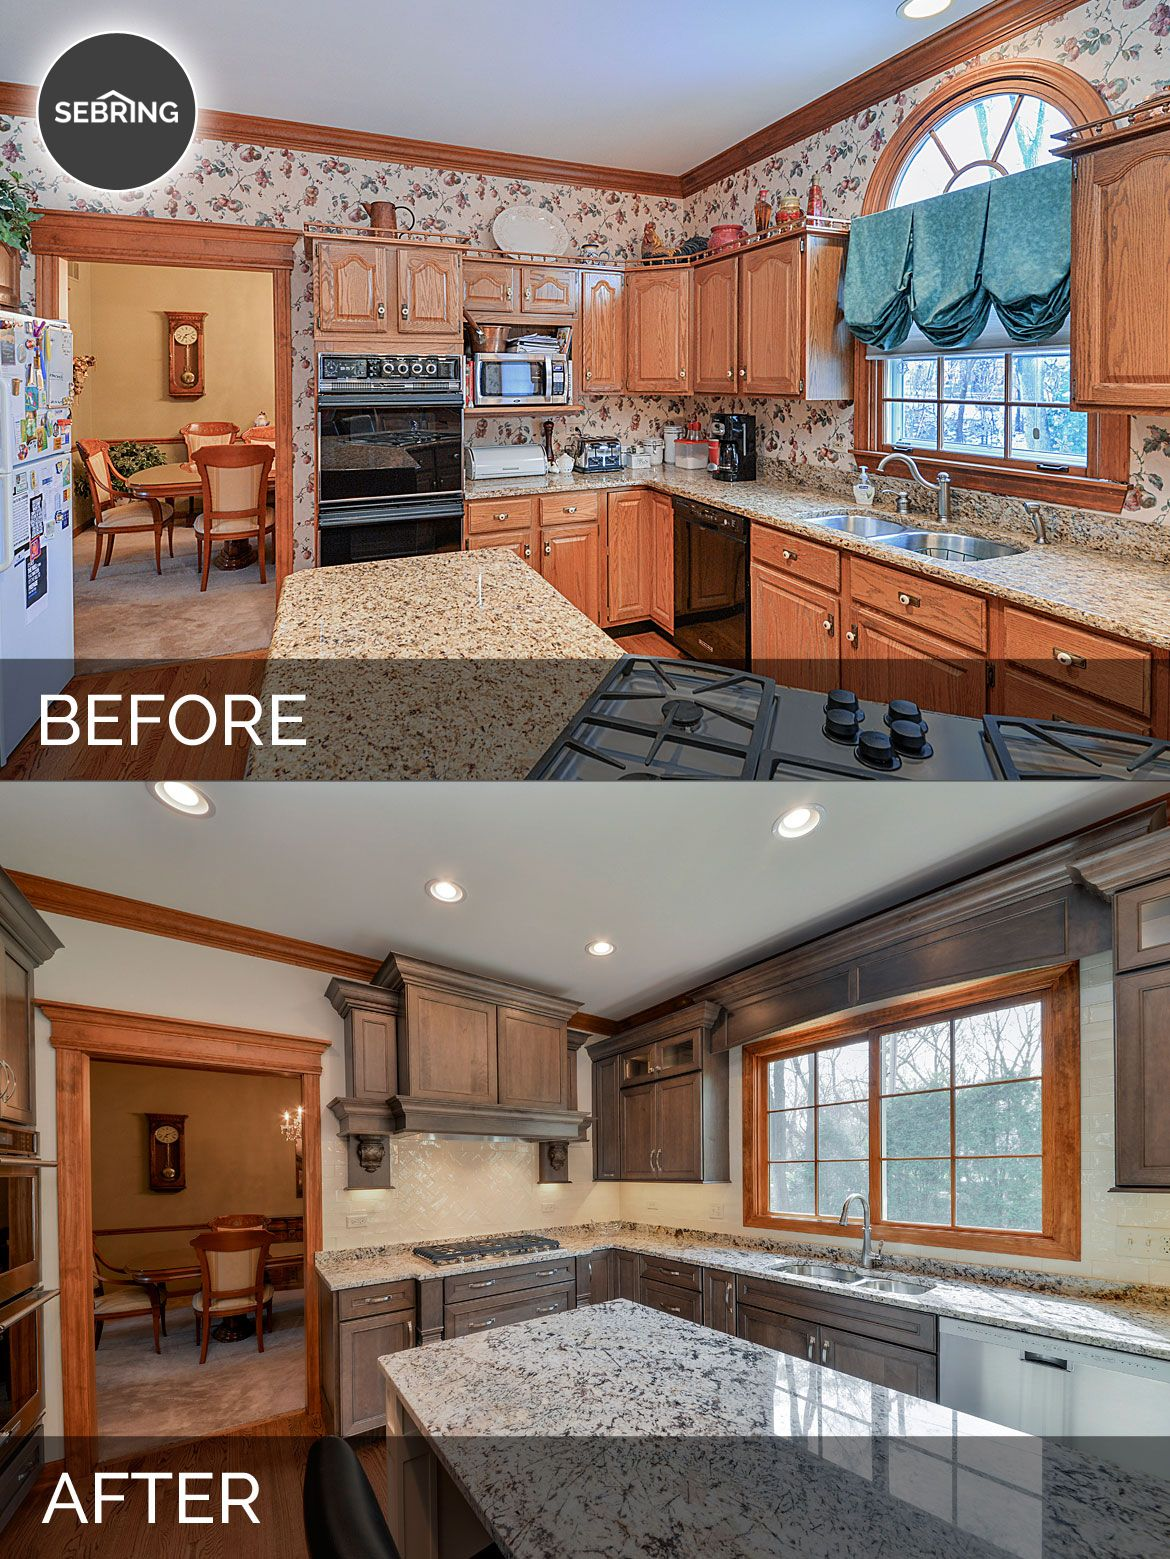 Before and After Kitchen Remodeling Naperville - Sebring Services ...